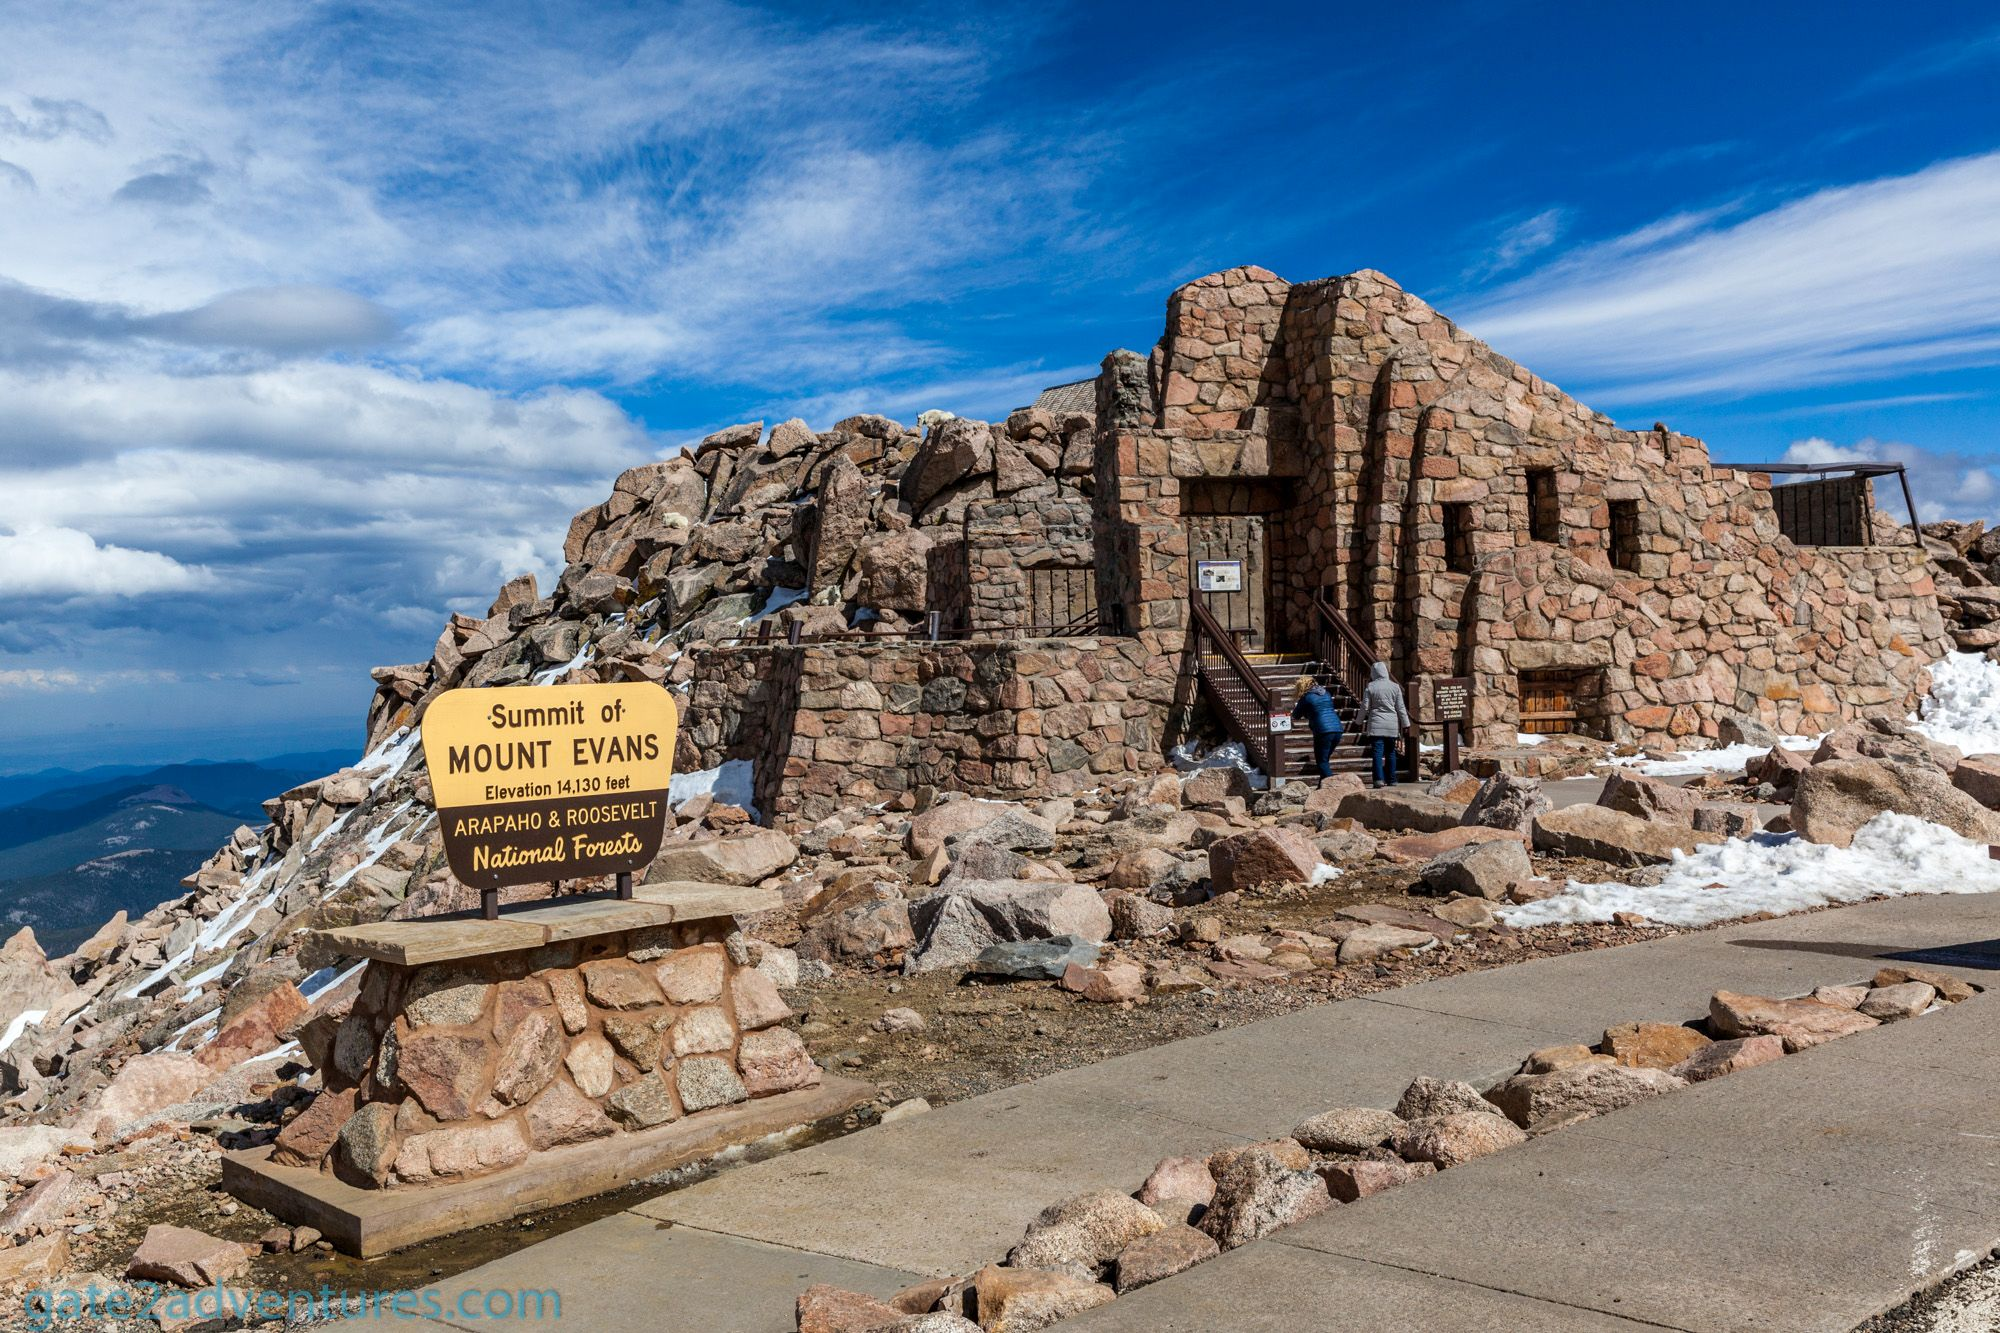 Road Trip on the Highest Paved Road in North America